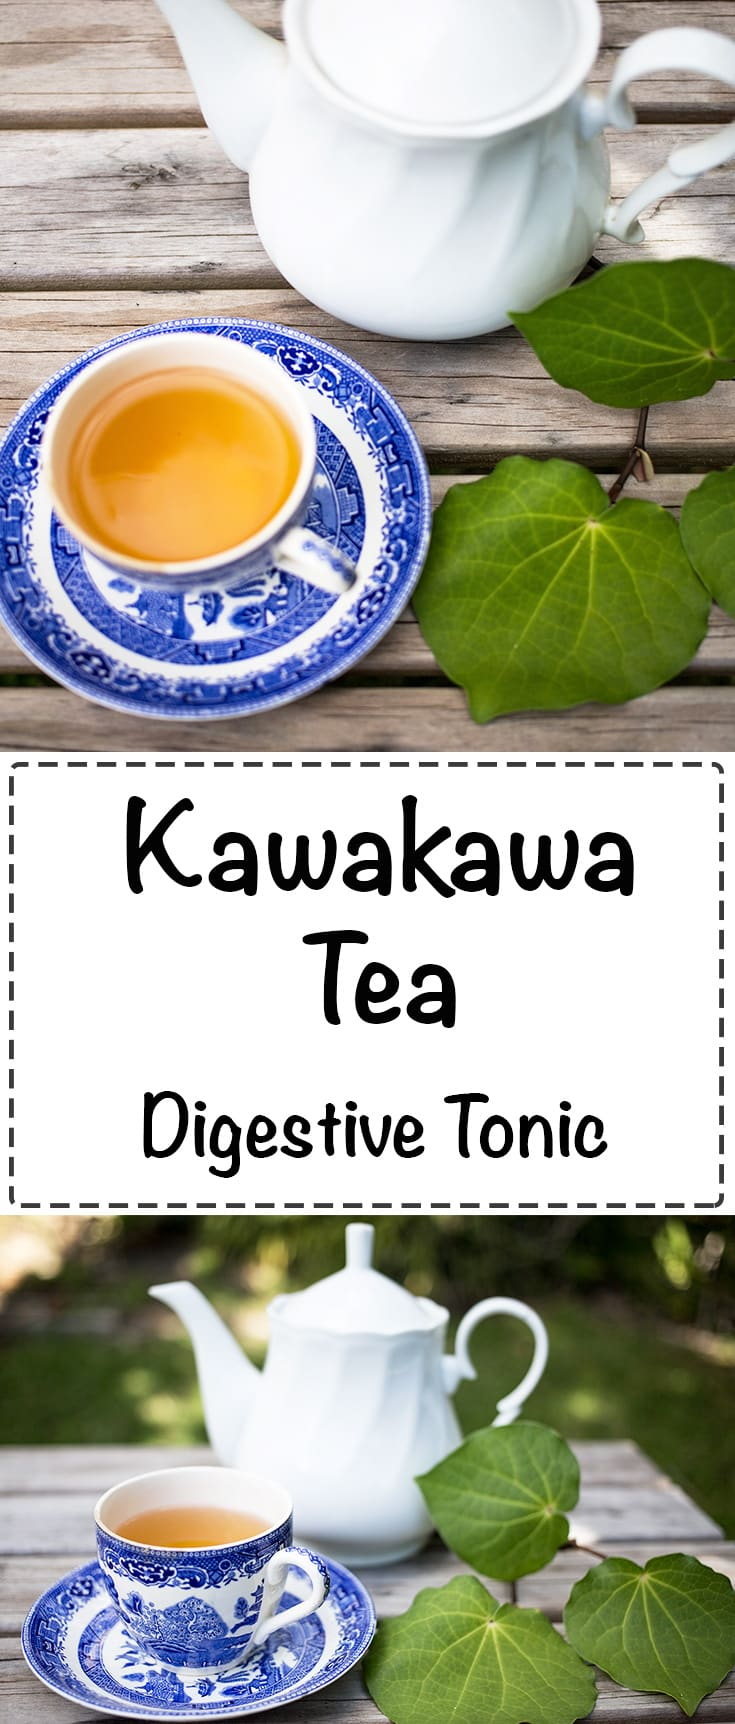 Kawakawa Tea - A refreshing drink and digestive tonic that excellent for overall health and wellbeing.